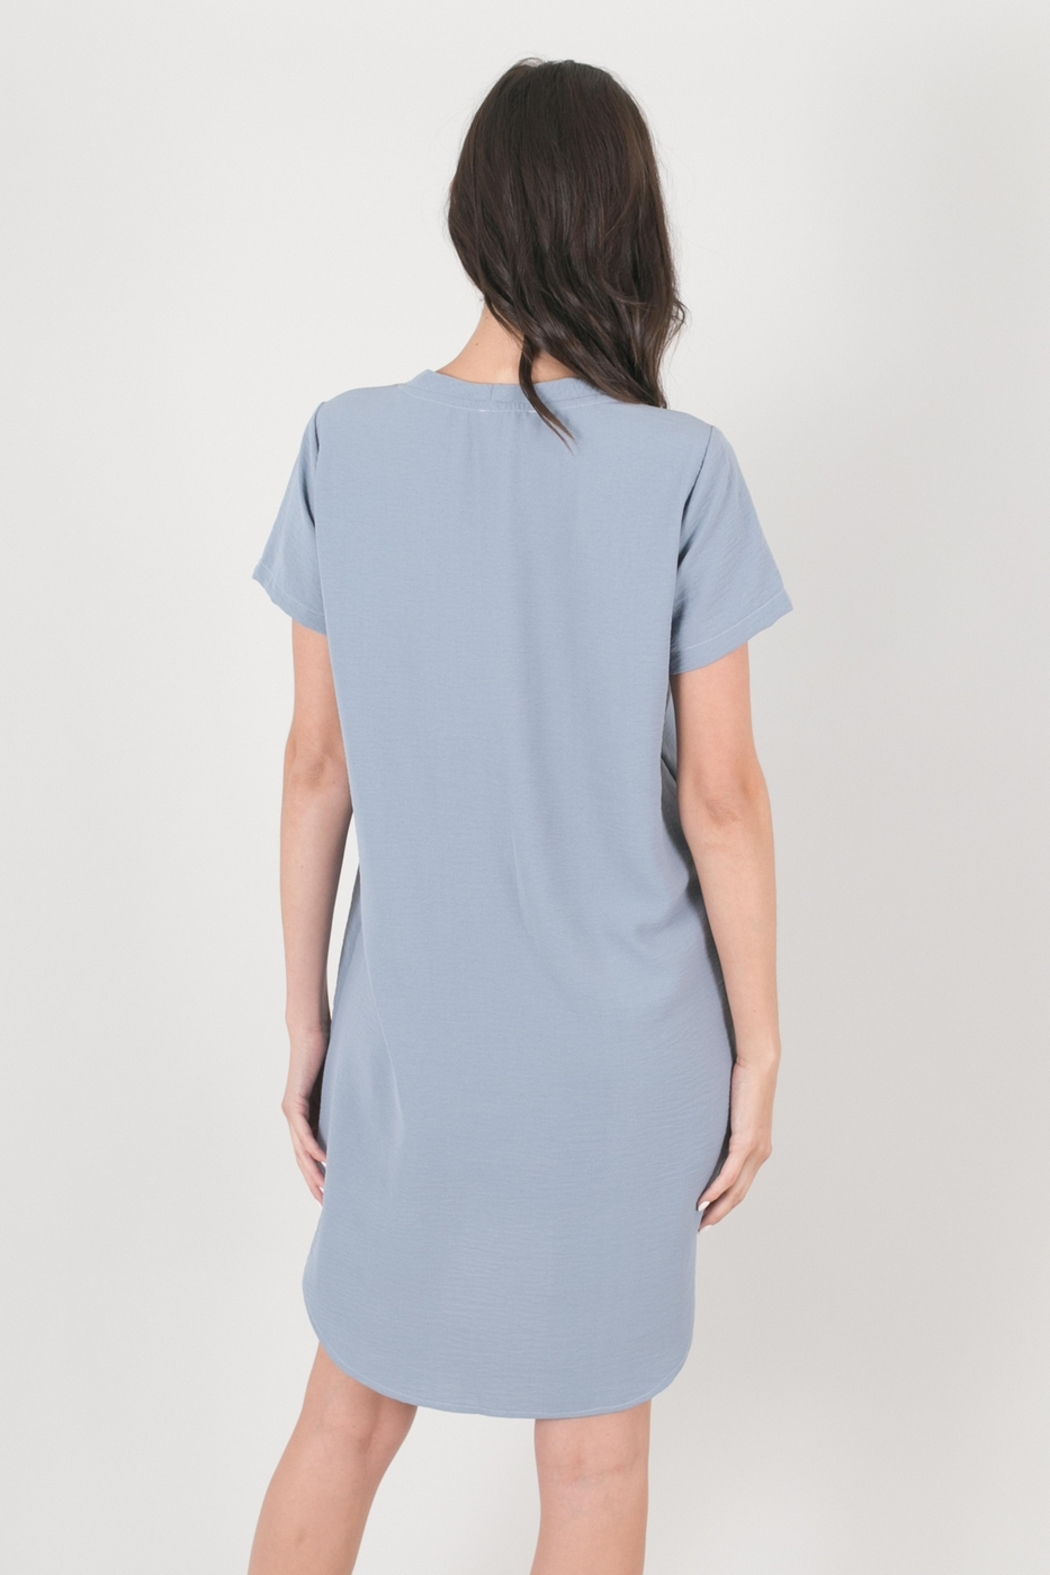 Lyn-Maree's  Perfect Everyday T-Shirt Dress - Front Full Image